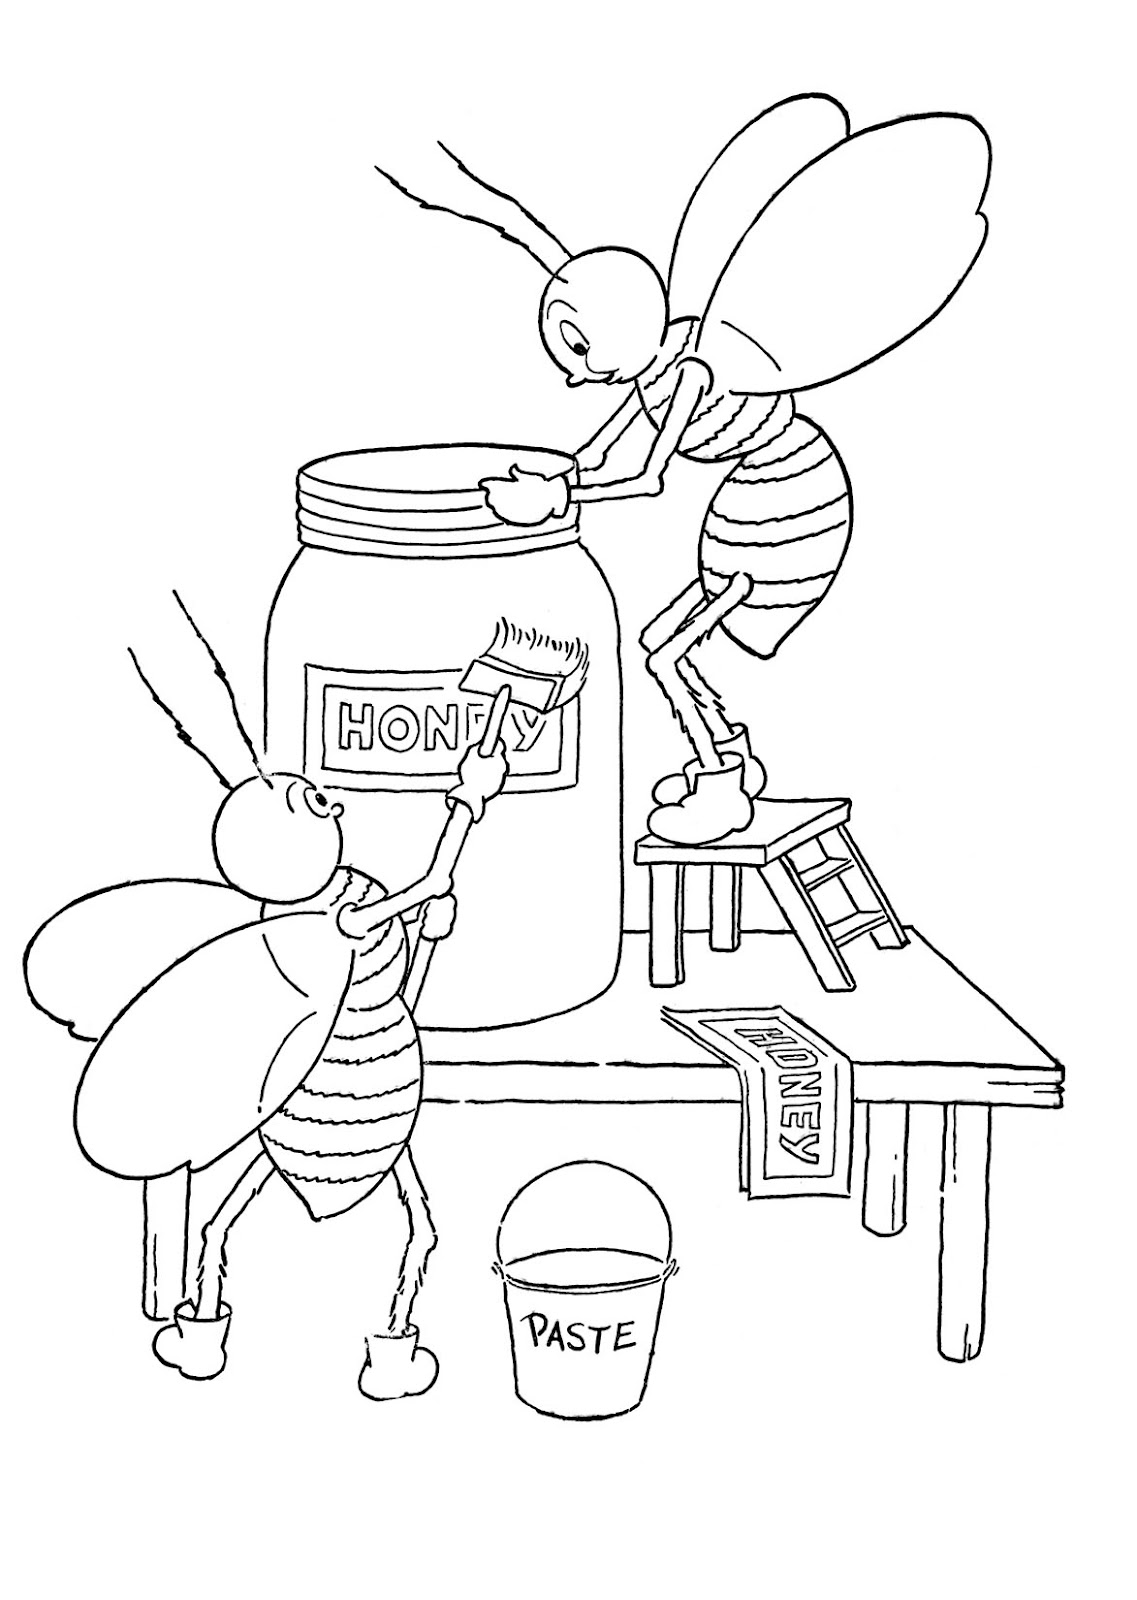 Kids Printable Honey Bees Coloring